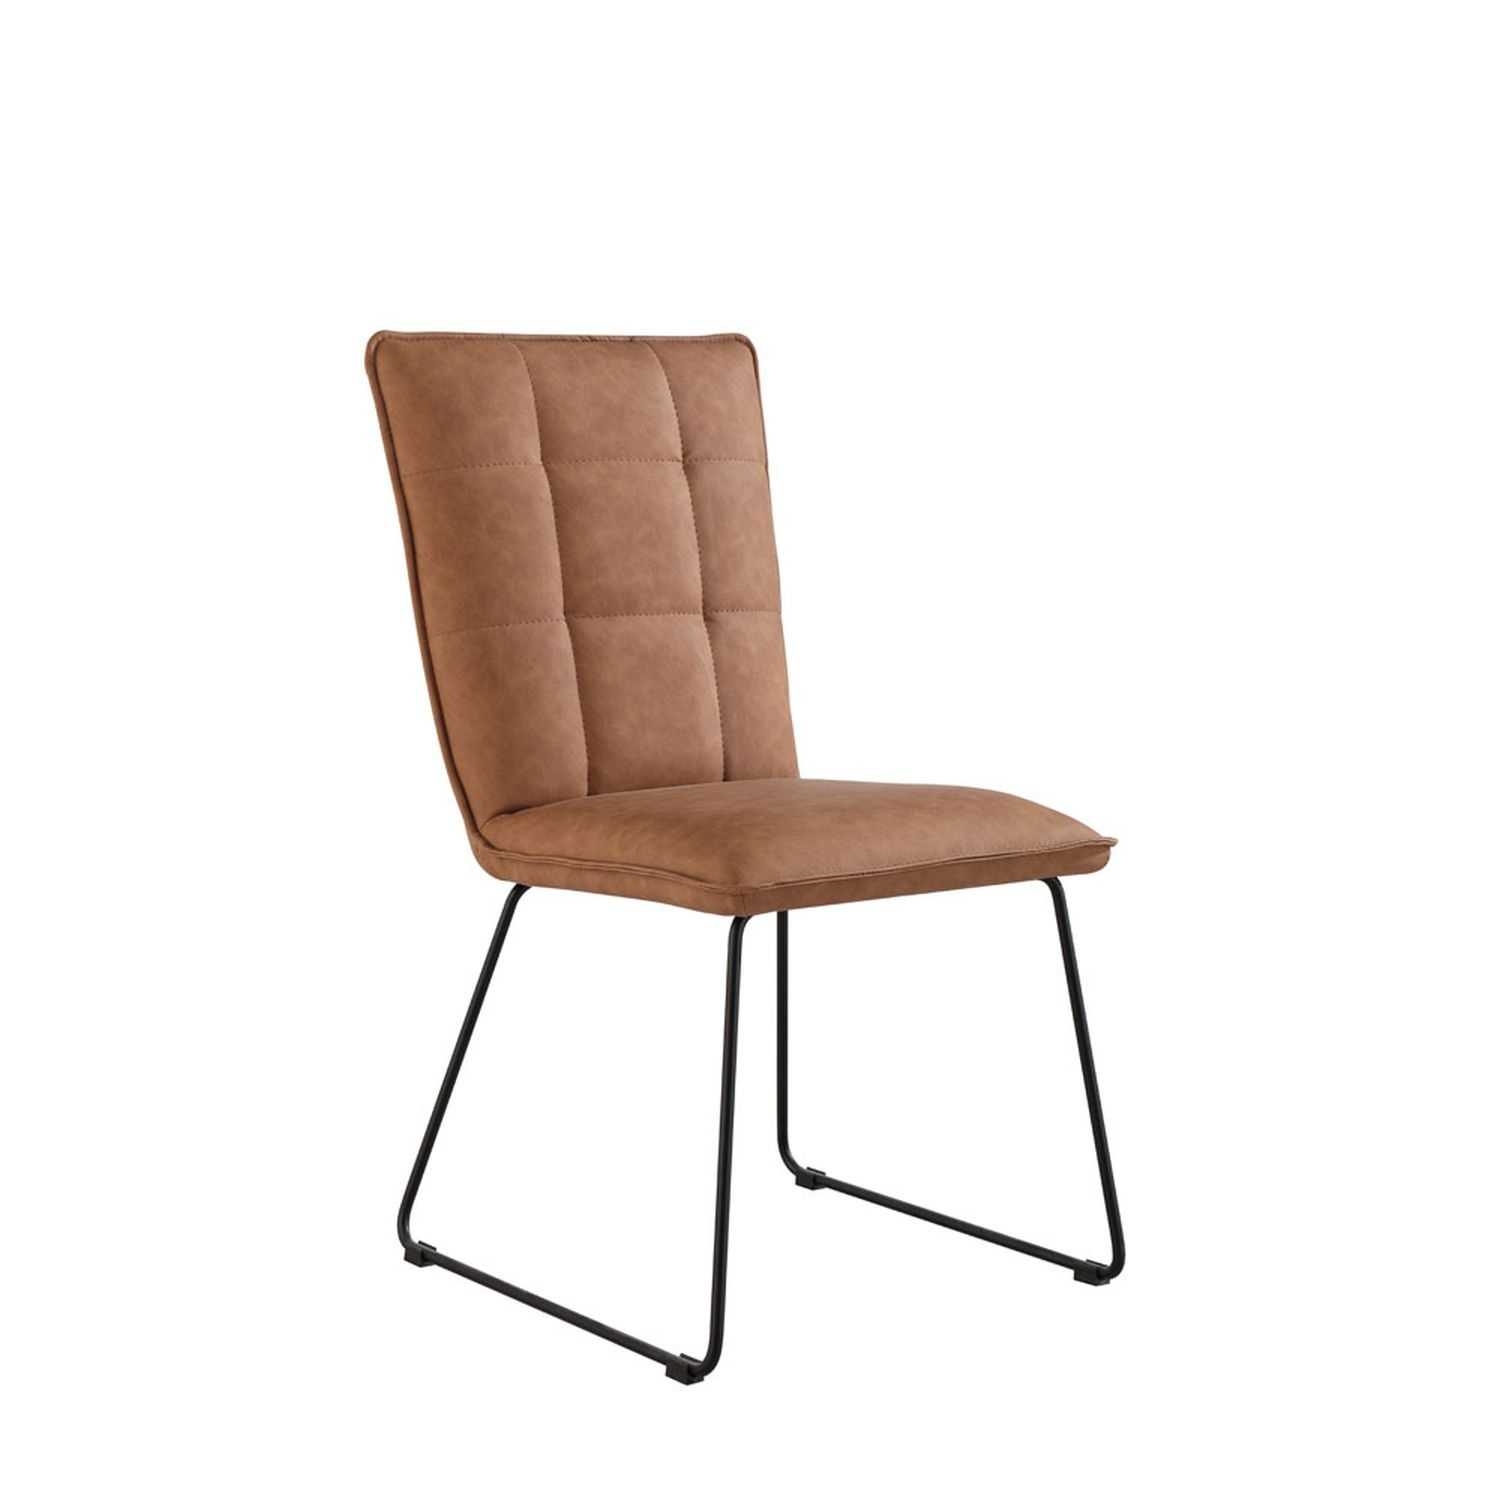 Image of Casa Pair of Panel Dining Chairs, Tan